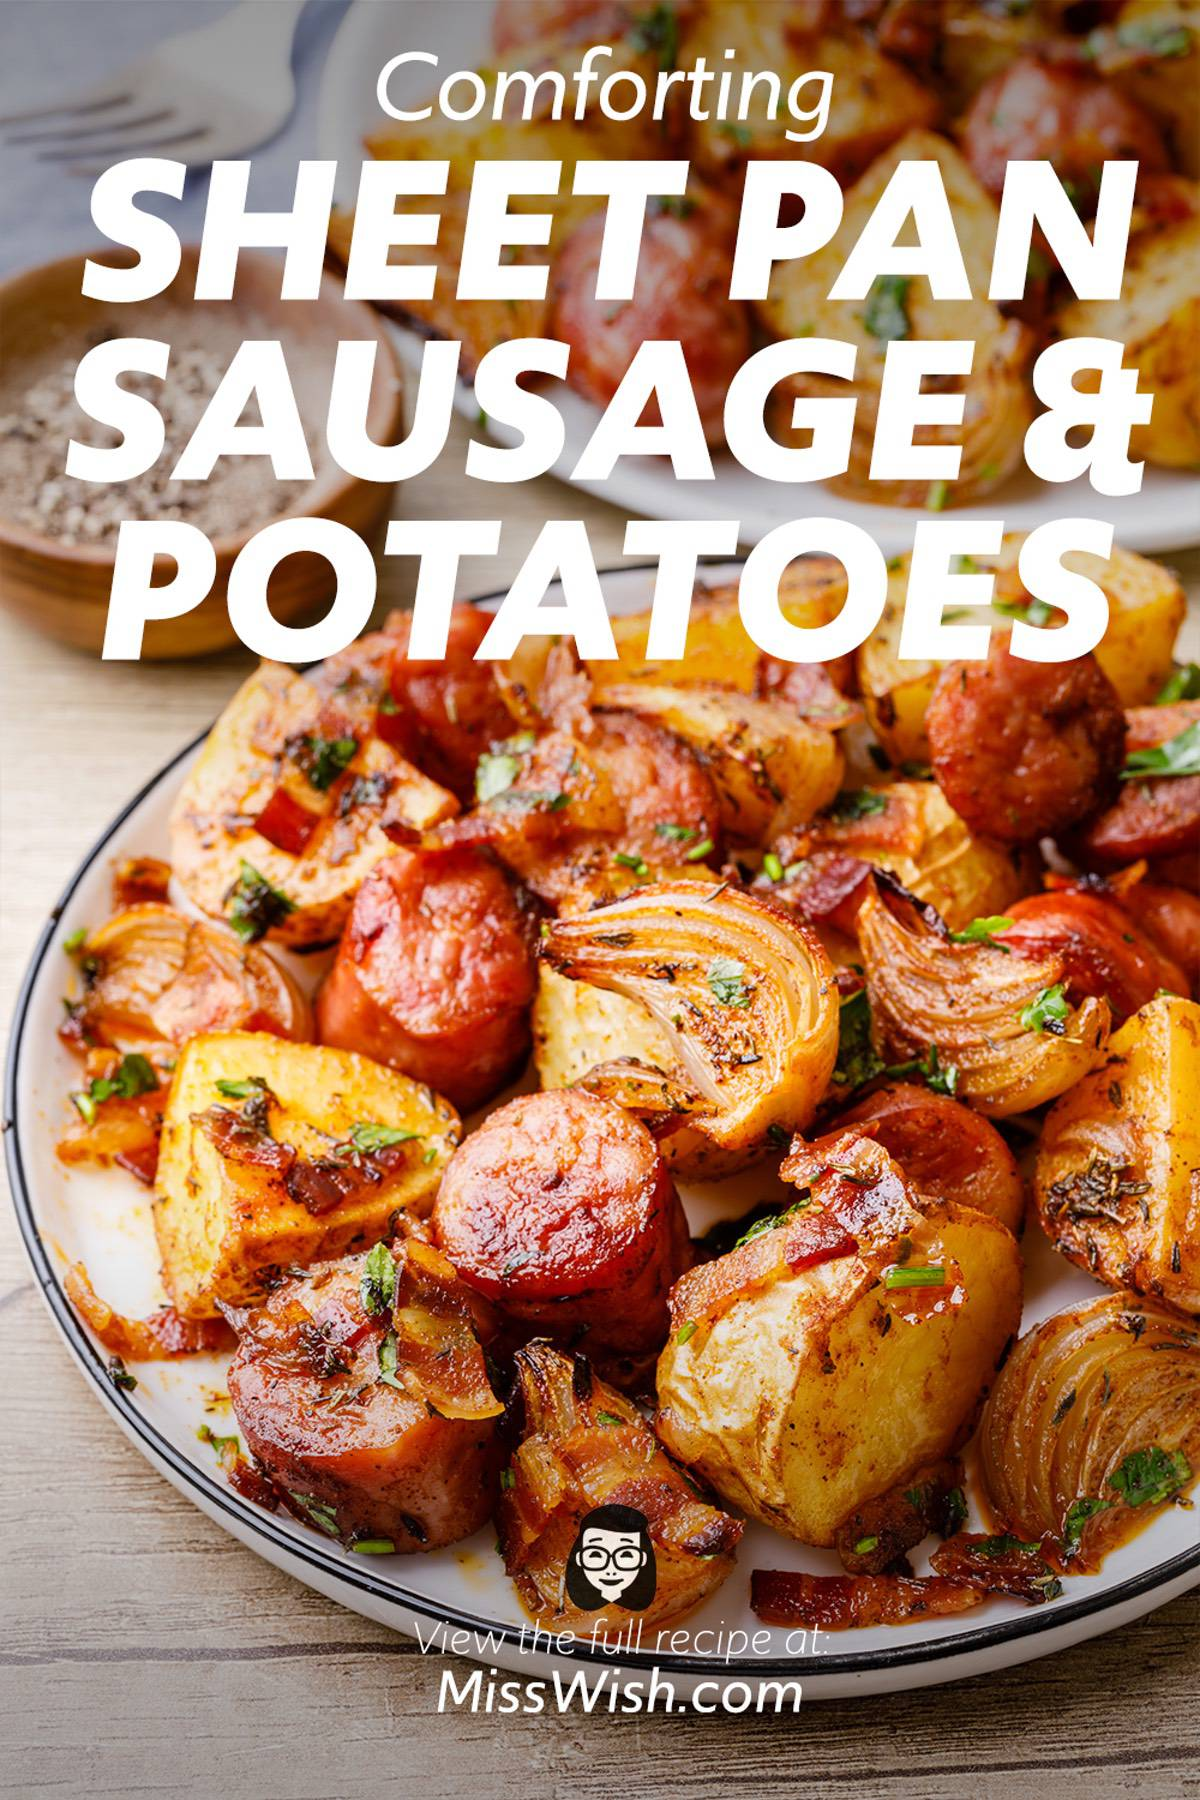 Comforting Sheet Pan Sausage And Potatoes for a Hearty Meal